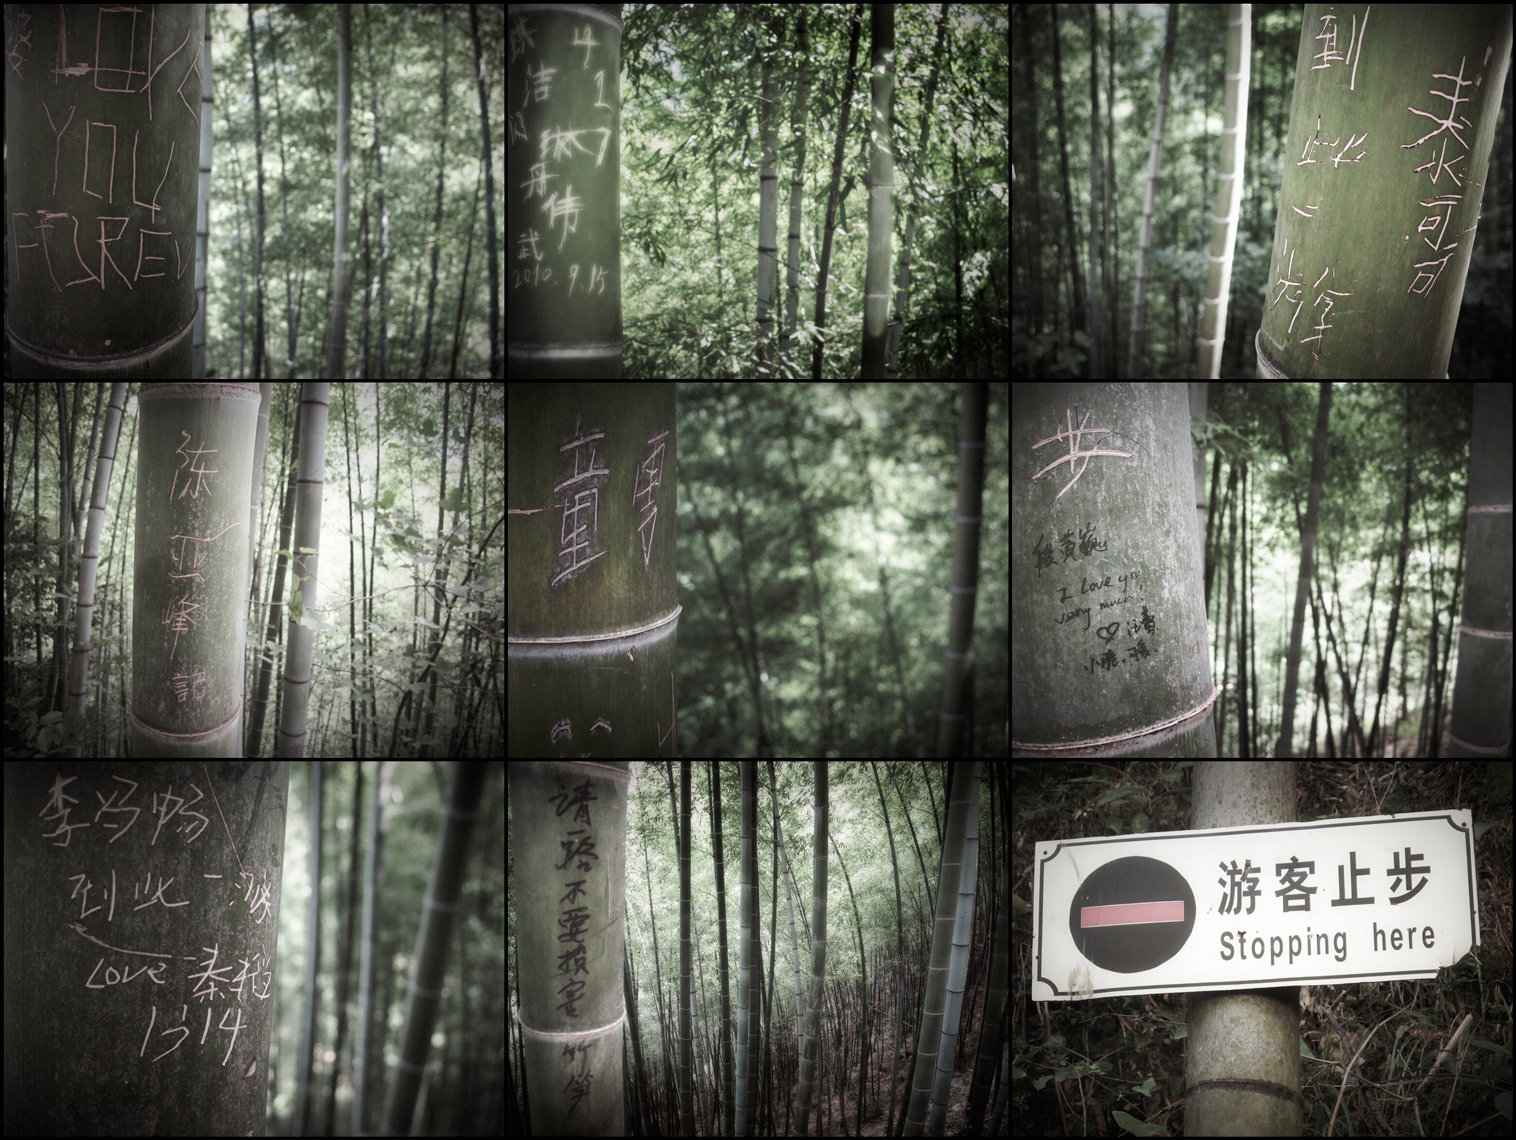 Jon Wyatt Photography - The Lost Library IV - Graffiti on bamboo in bamboo forest in China